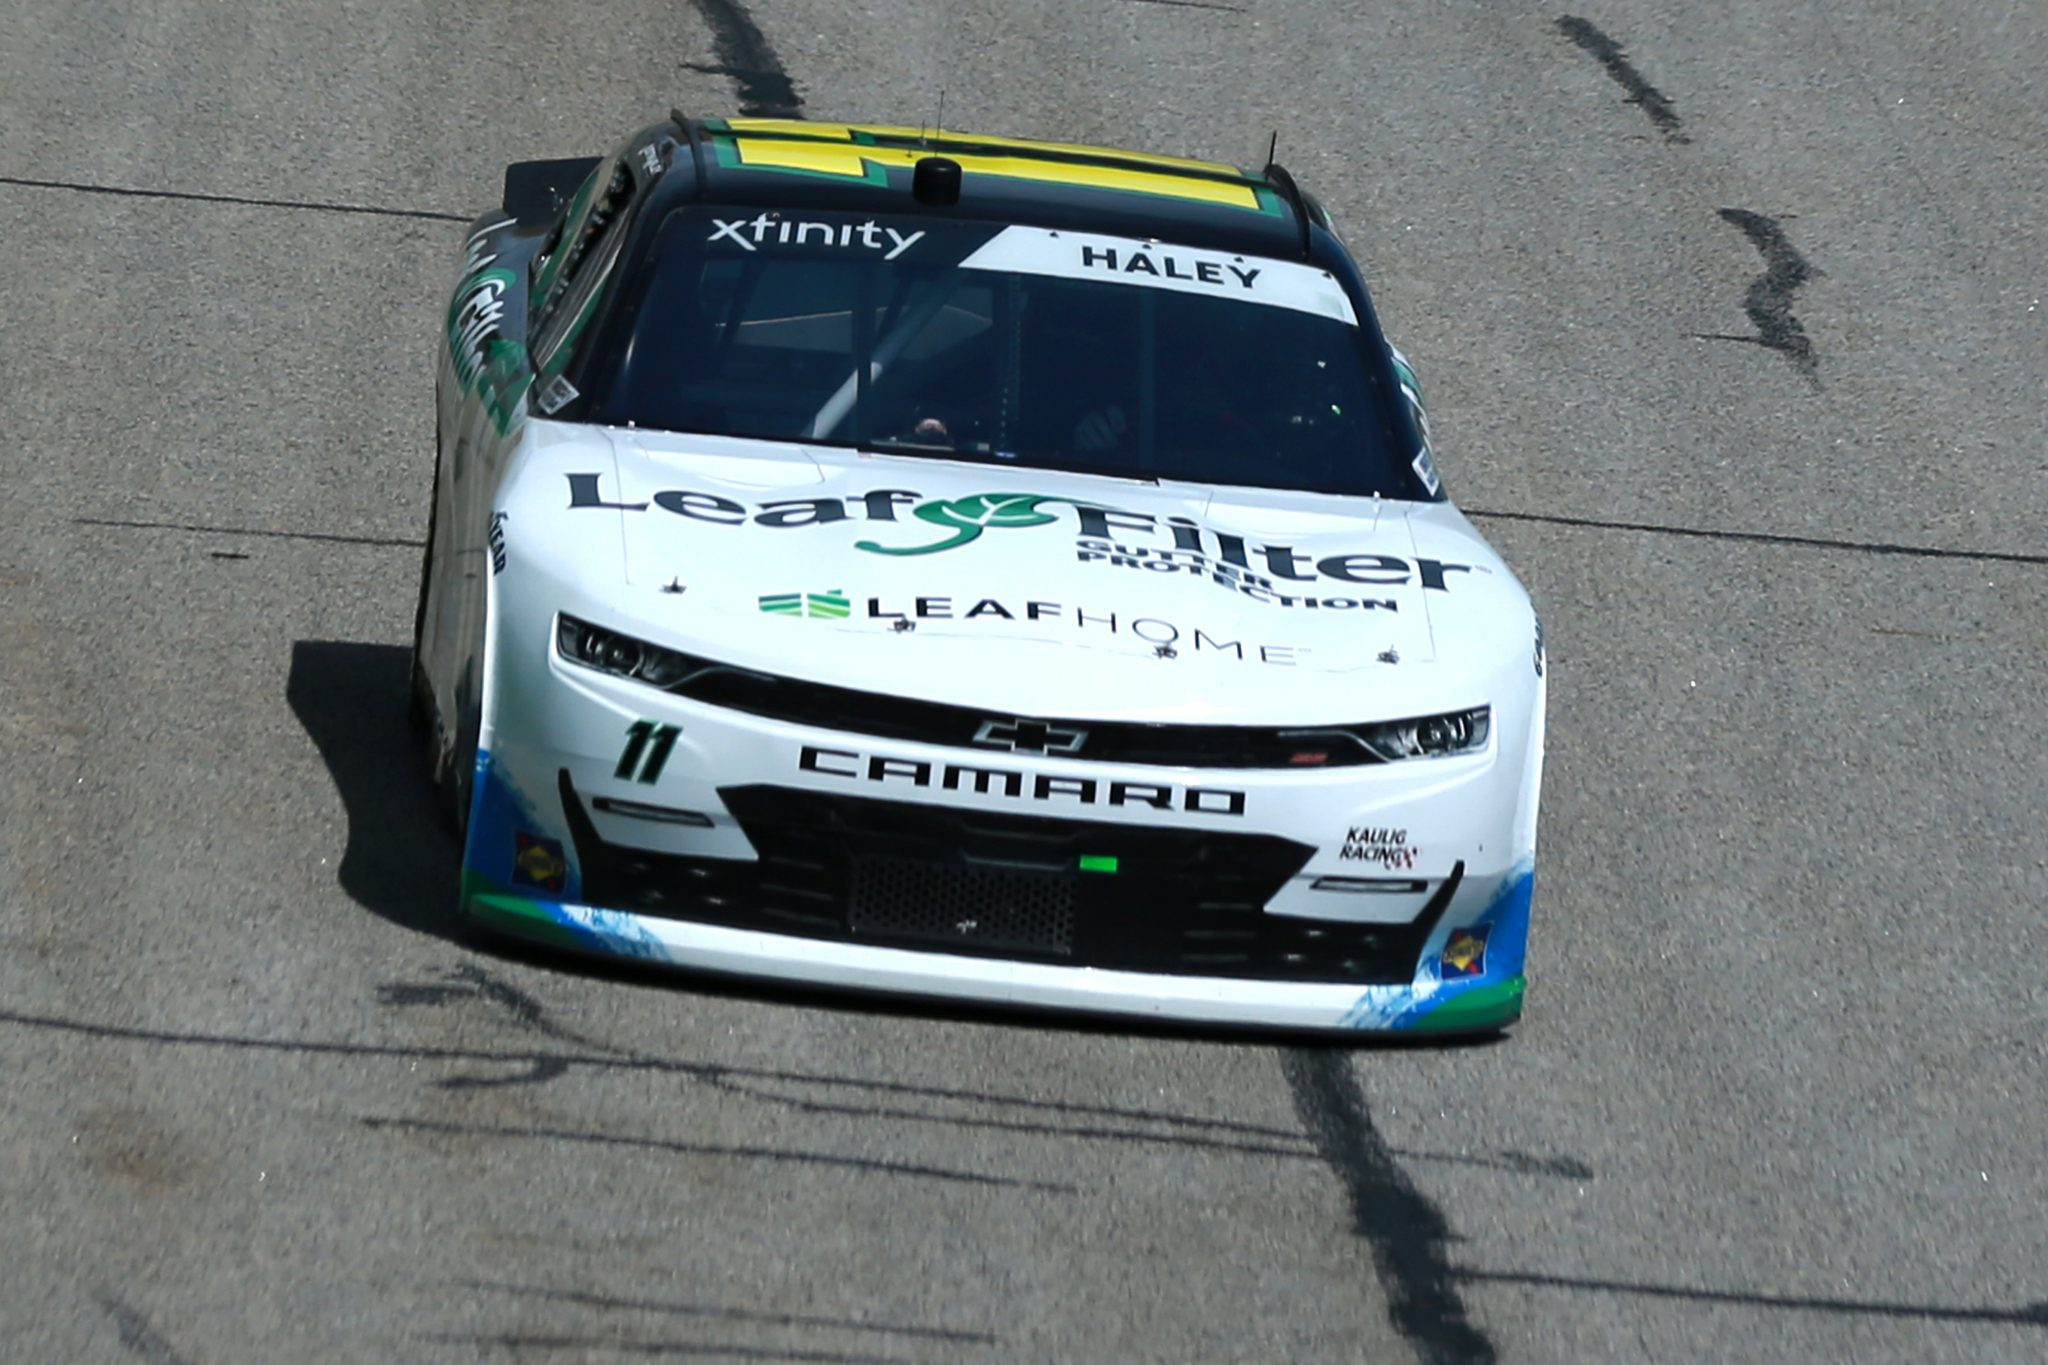 HAMPTON, GEORGIA - JULY 10: Austin Dillon, driver of the #1 PFJ Spicy Chicken Sandwich Chevrolet, drives during the NASCAR Xfinity Series Credit Karma Money 250 at Atlanta Motor Speedway on July 10, 2021 in Hampton, Georgia. (Photo by Sean Gardner/Getty Images) | Getty Images